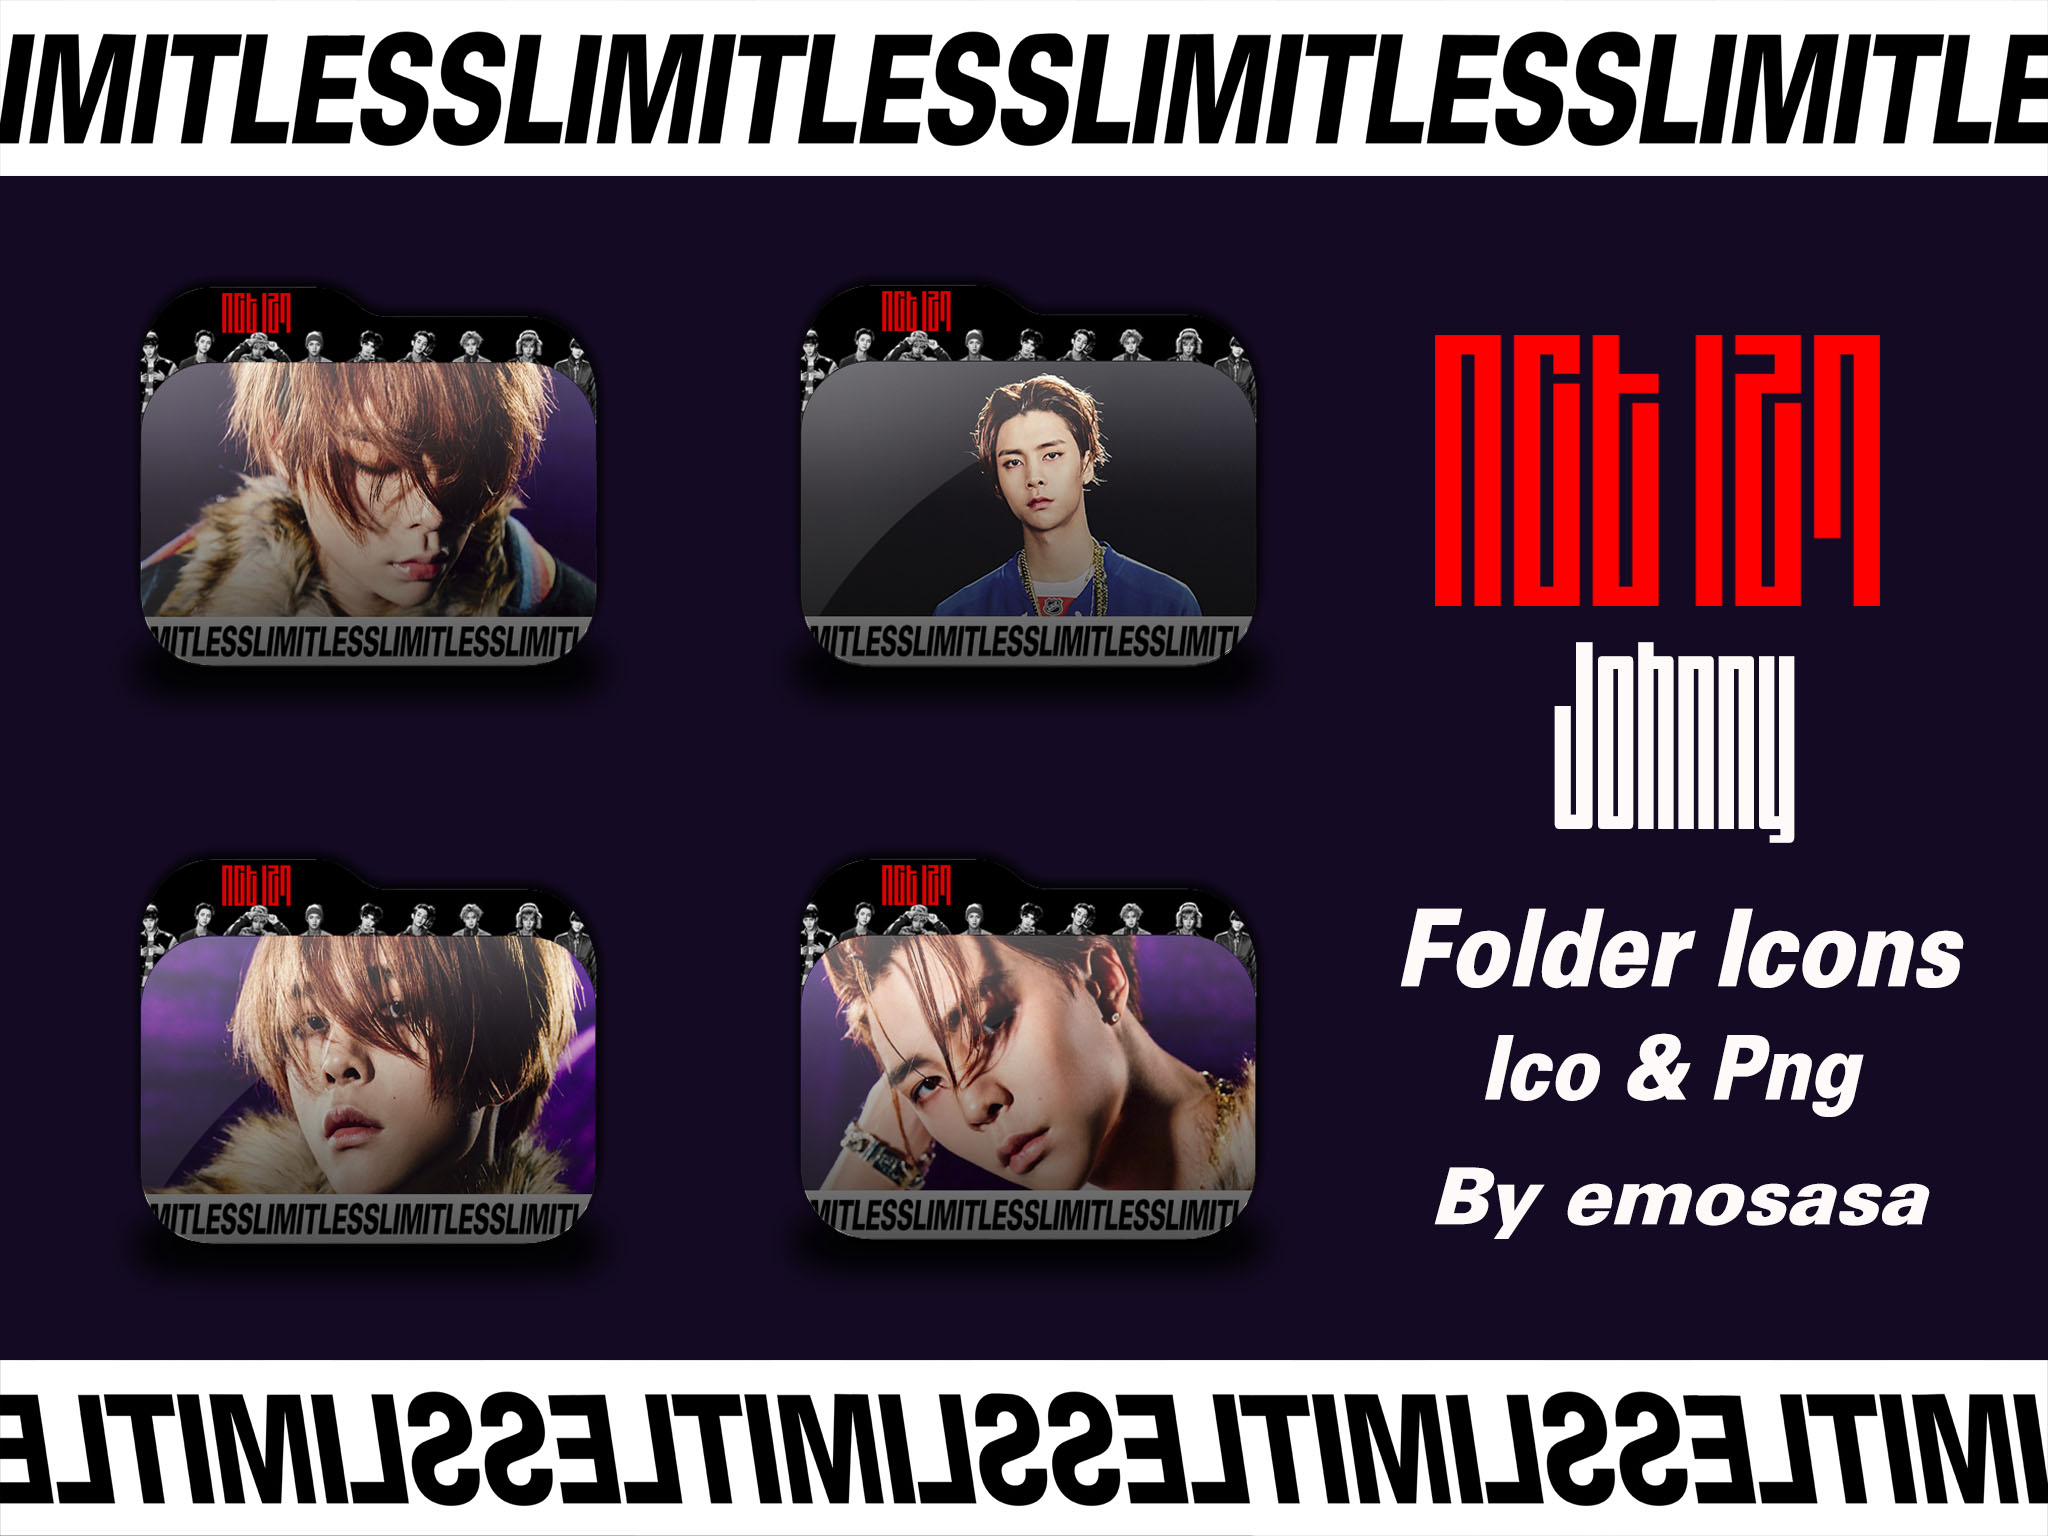 NCT 127 Johnny 'LIMITLESS' Folder Icons By Emosasa On